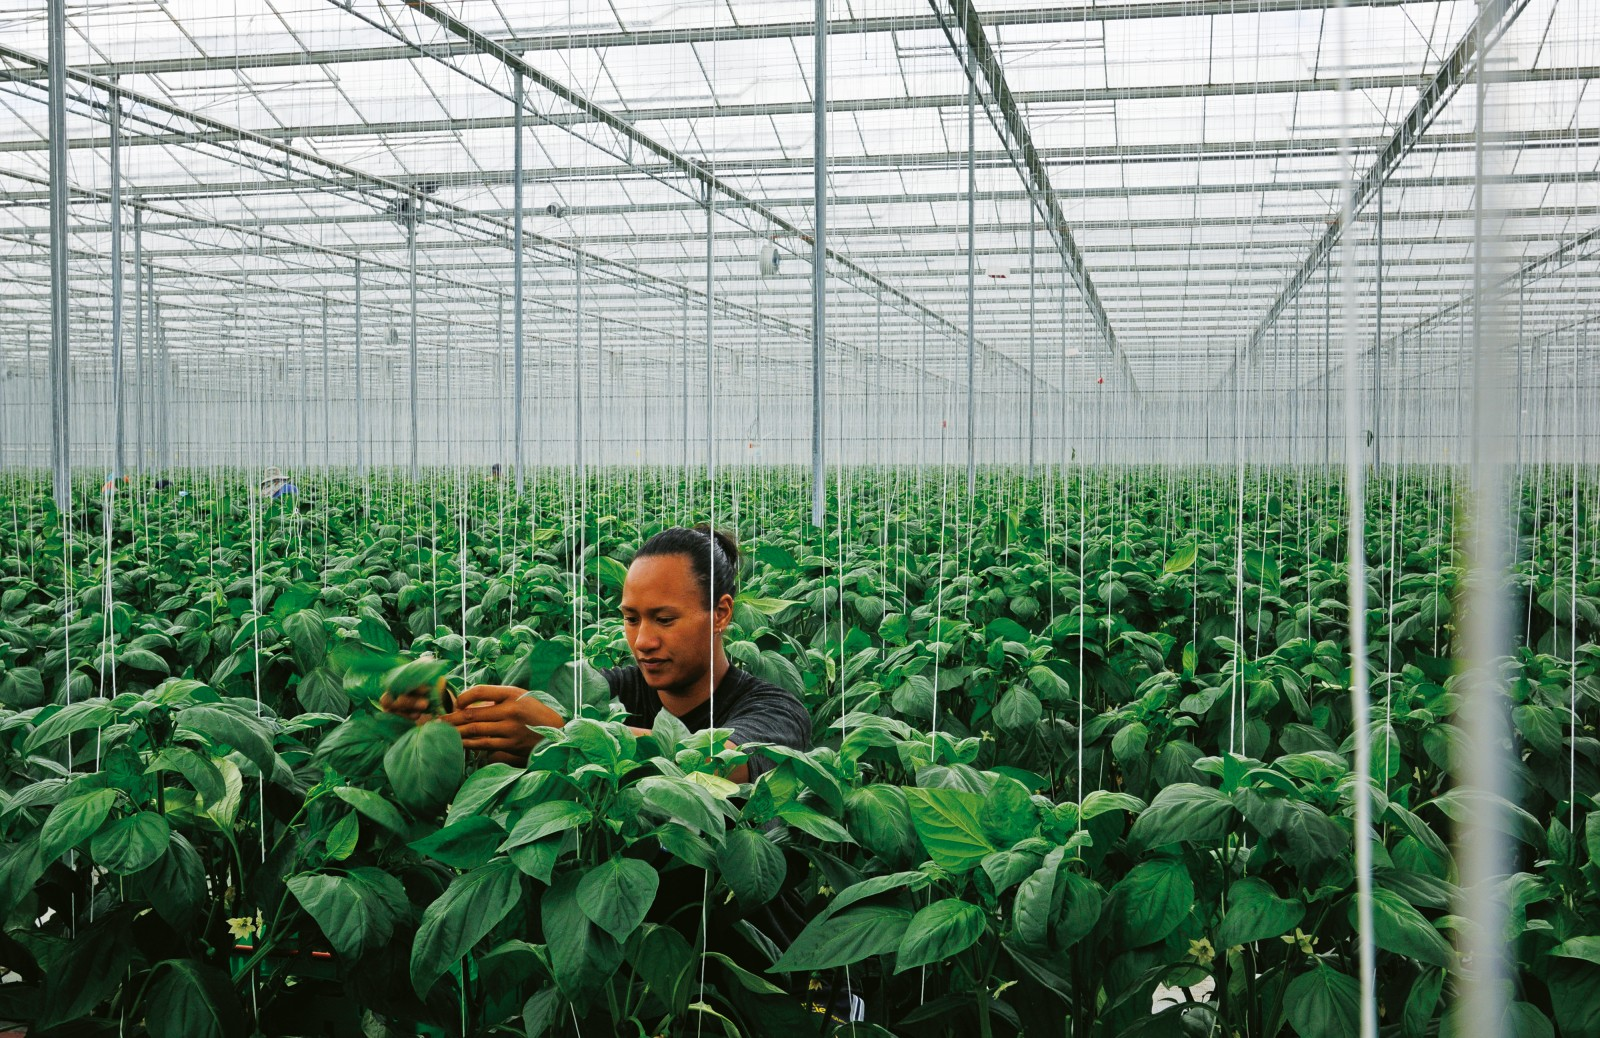 Temperature sensitive crops like capsicum, here tended by Kasey Johnson, are better grown under glass where the vagaries of weather can be controlled. Gourmet Mokai's giant greenhouse is heated with geothermal energy—a network of pipes convey hot water from a bore on the property.